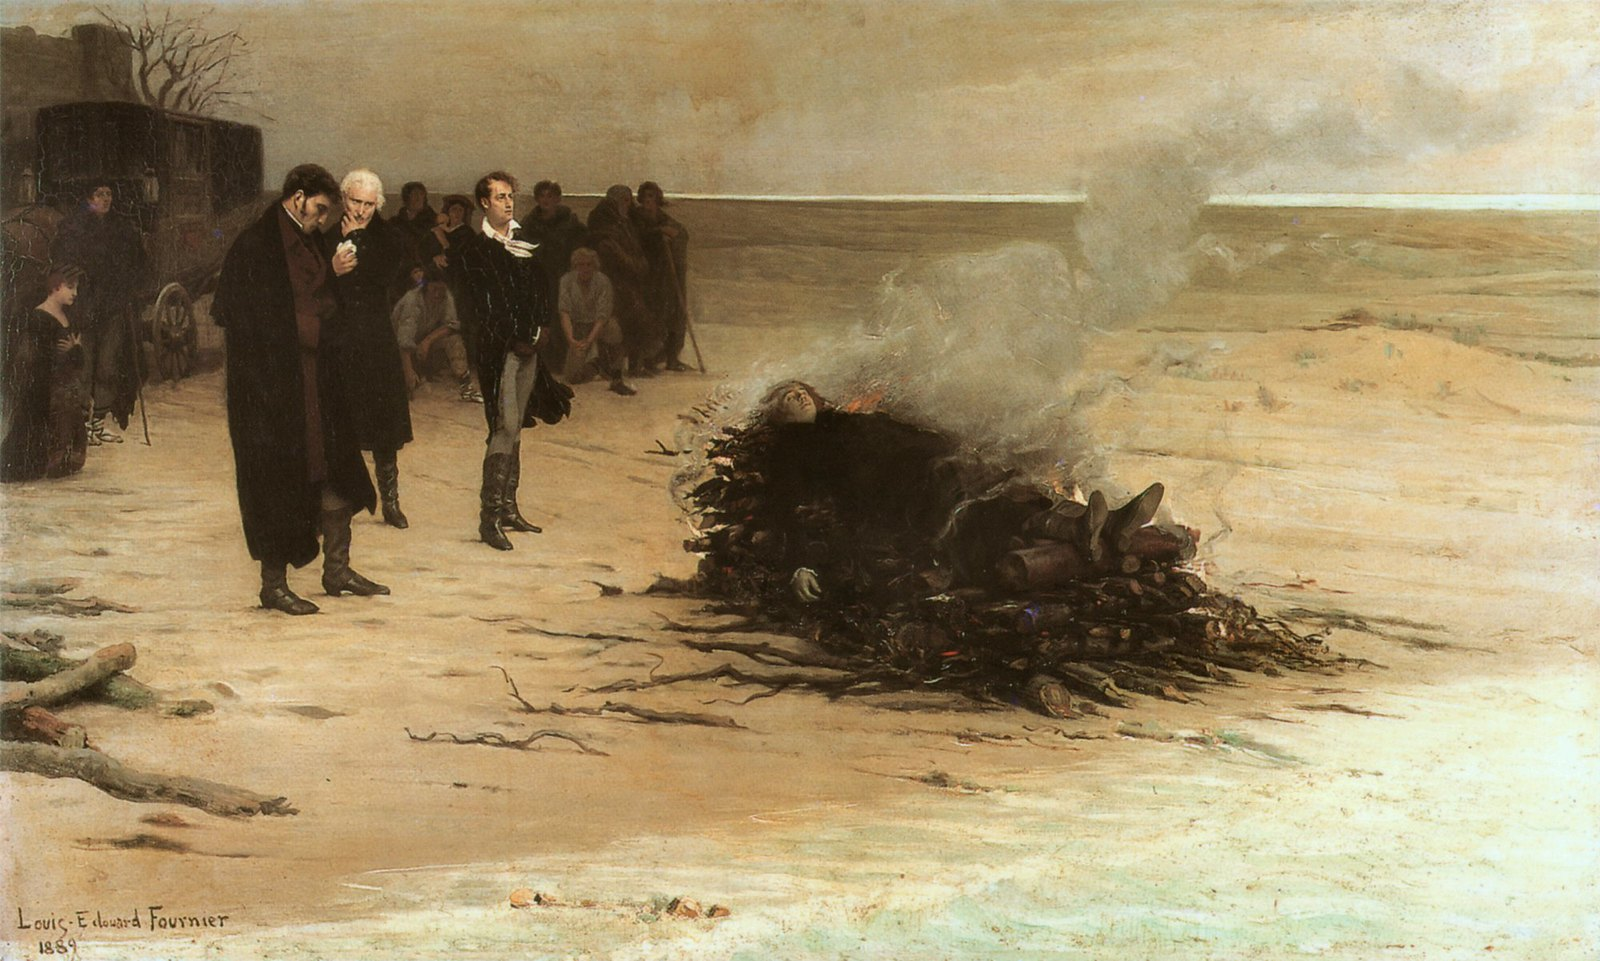 fournier, louis edouard - The Funeral of Shelley | by Amber Tree